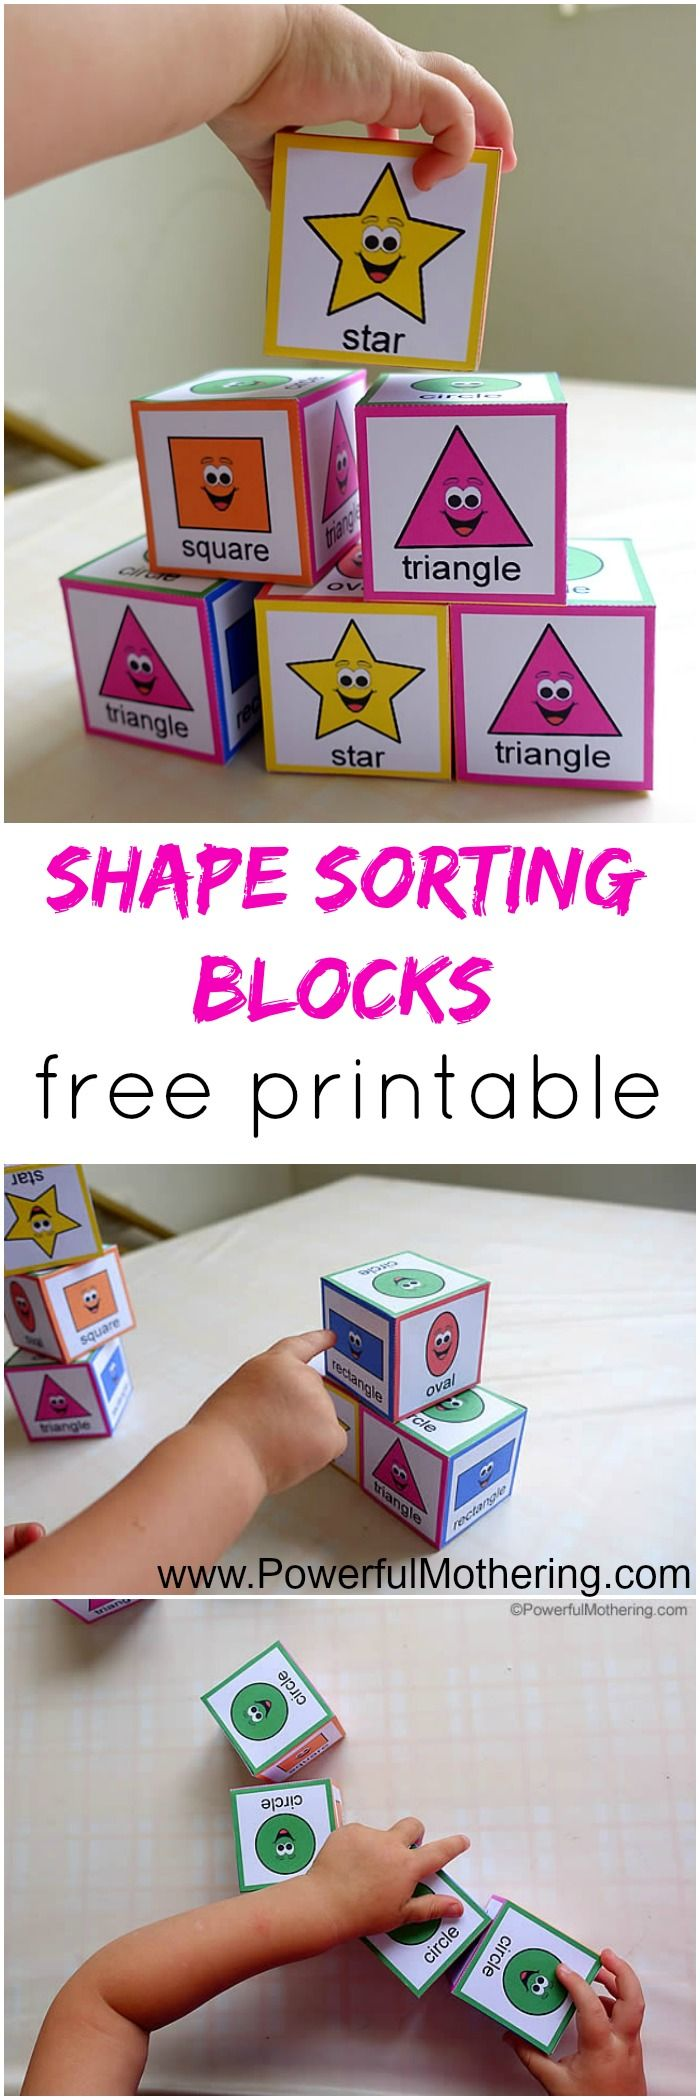 make your toddler some awesome sorting shapes boxes with free printable from PowerfulMothering.com basic colors and shapes as well as the written words for a bit of name recognition!